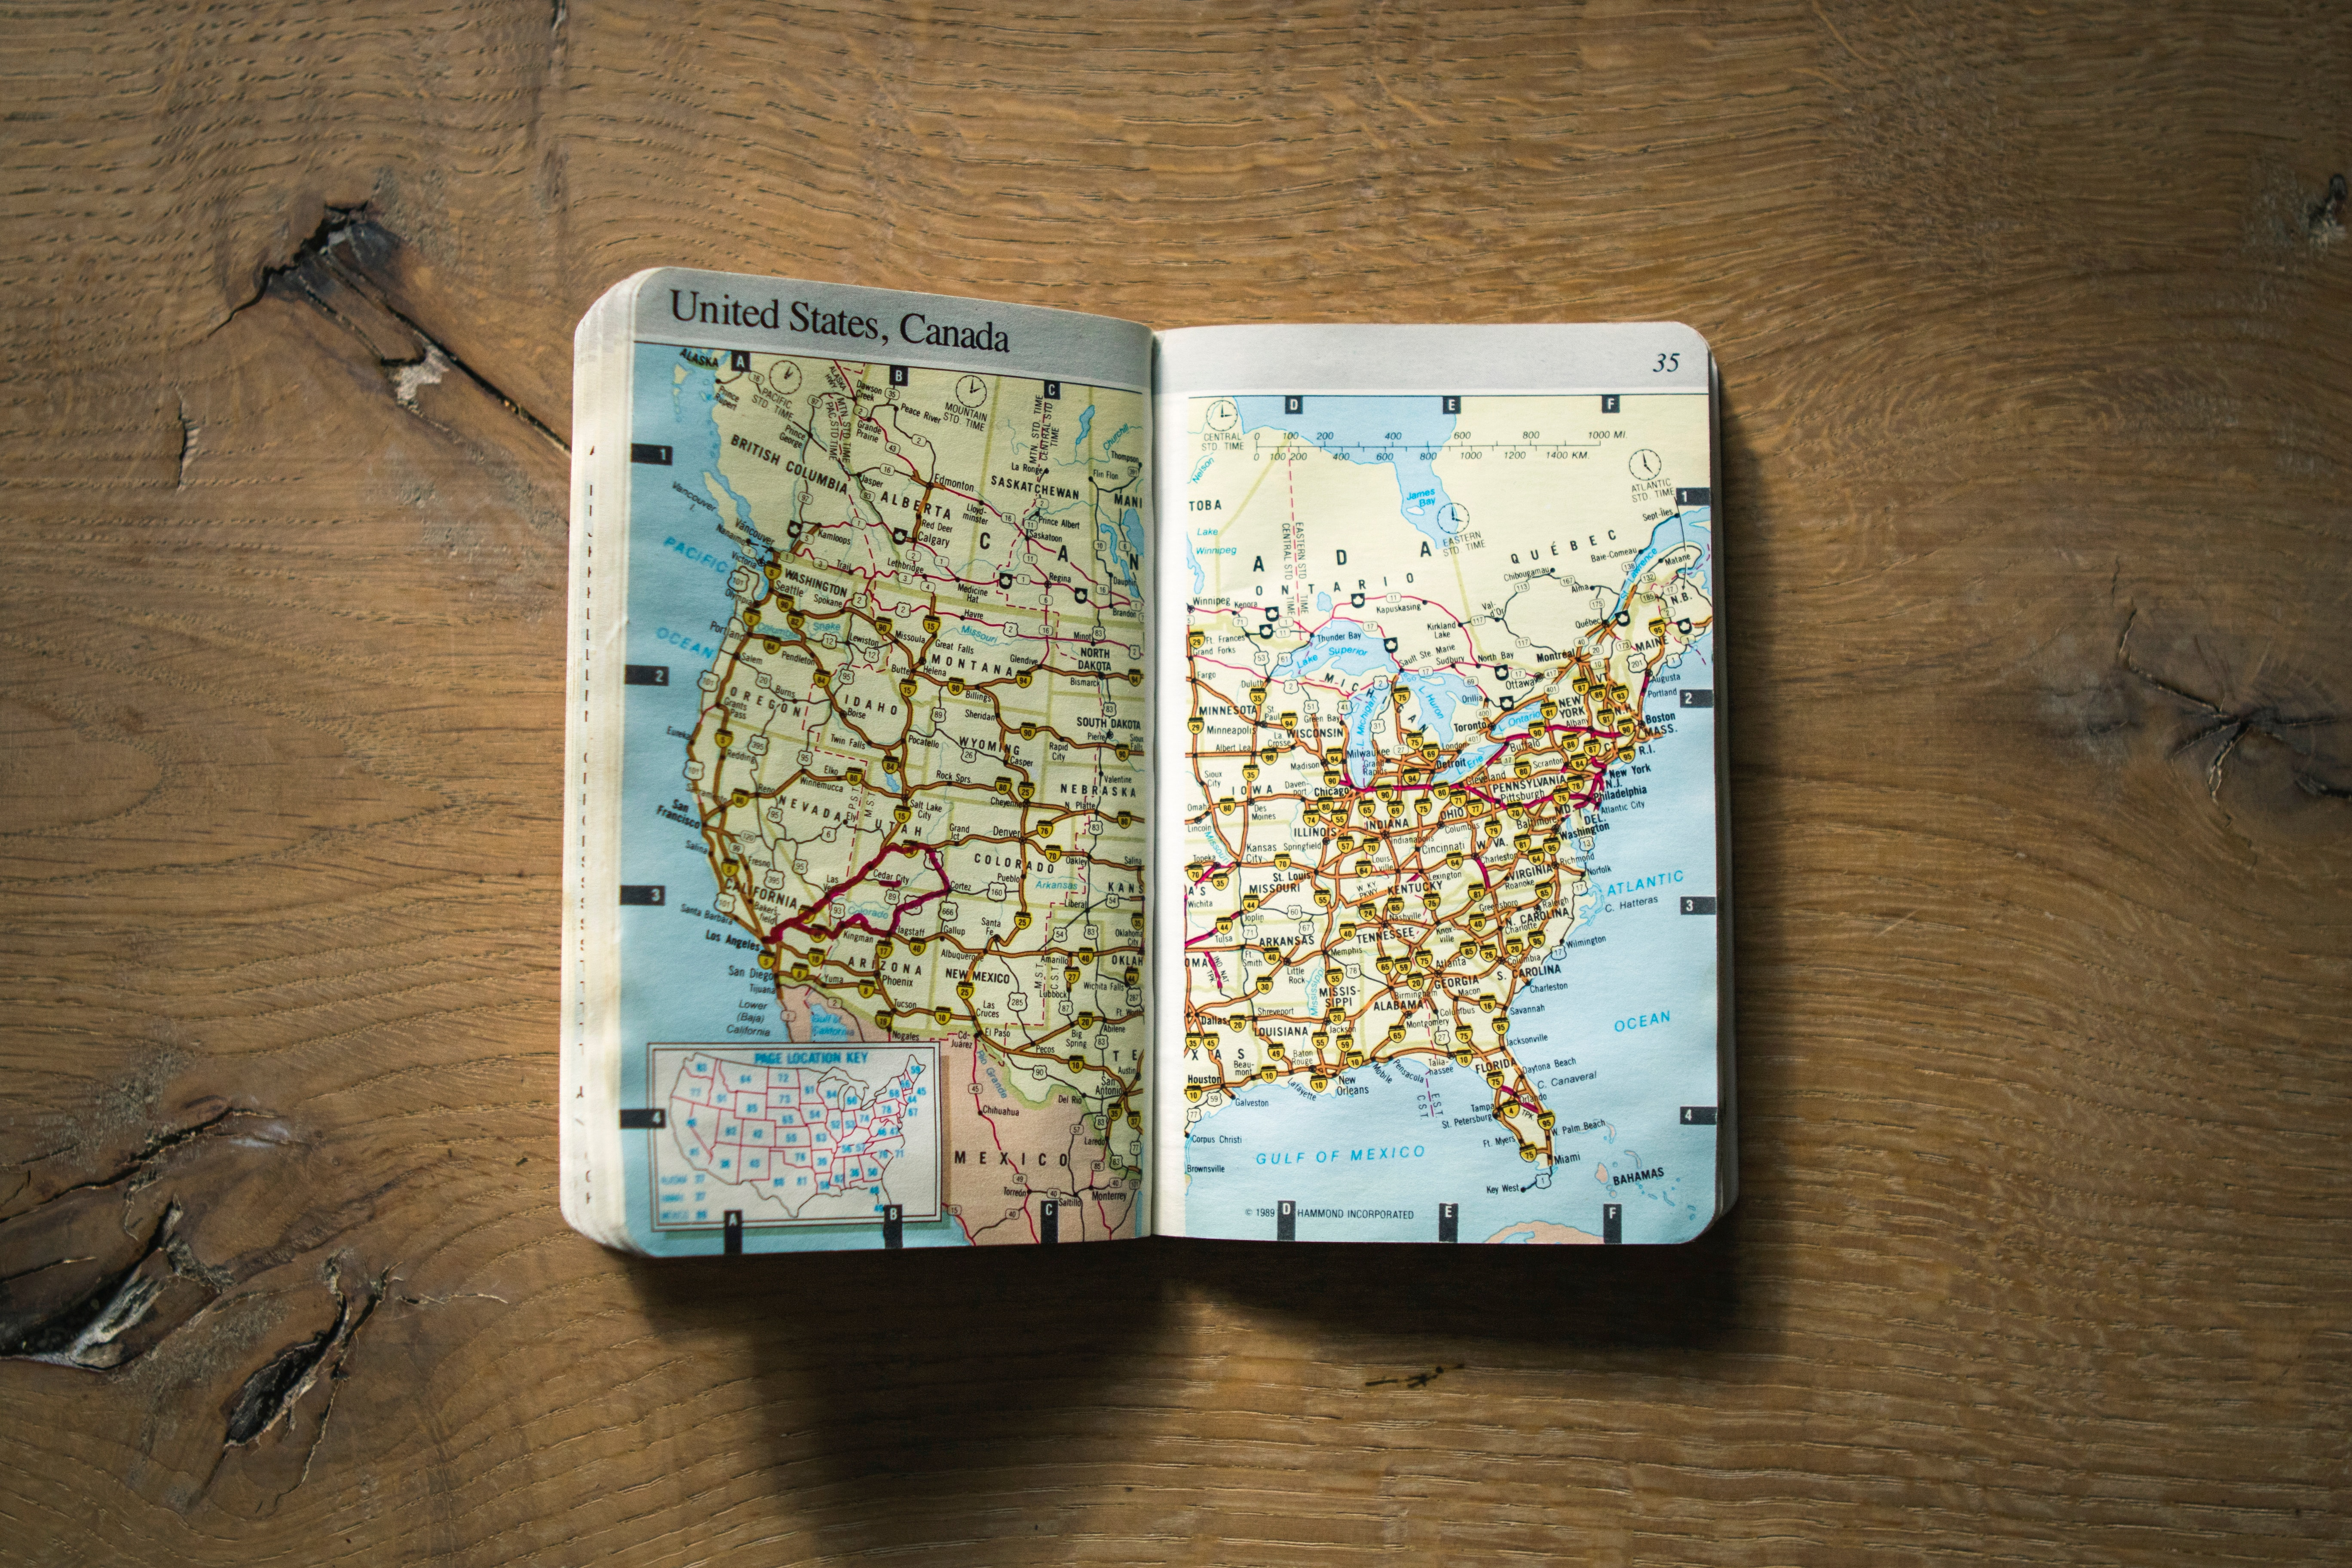 us travel map on table